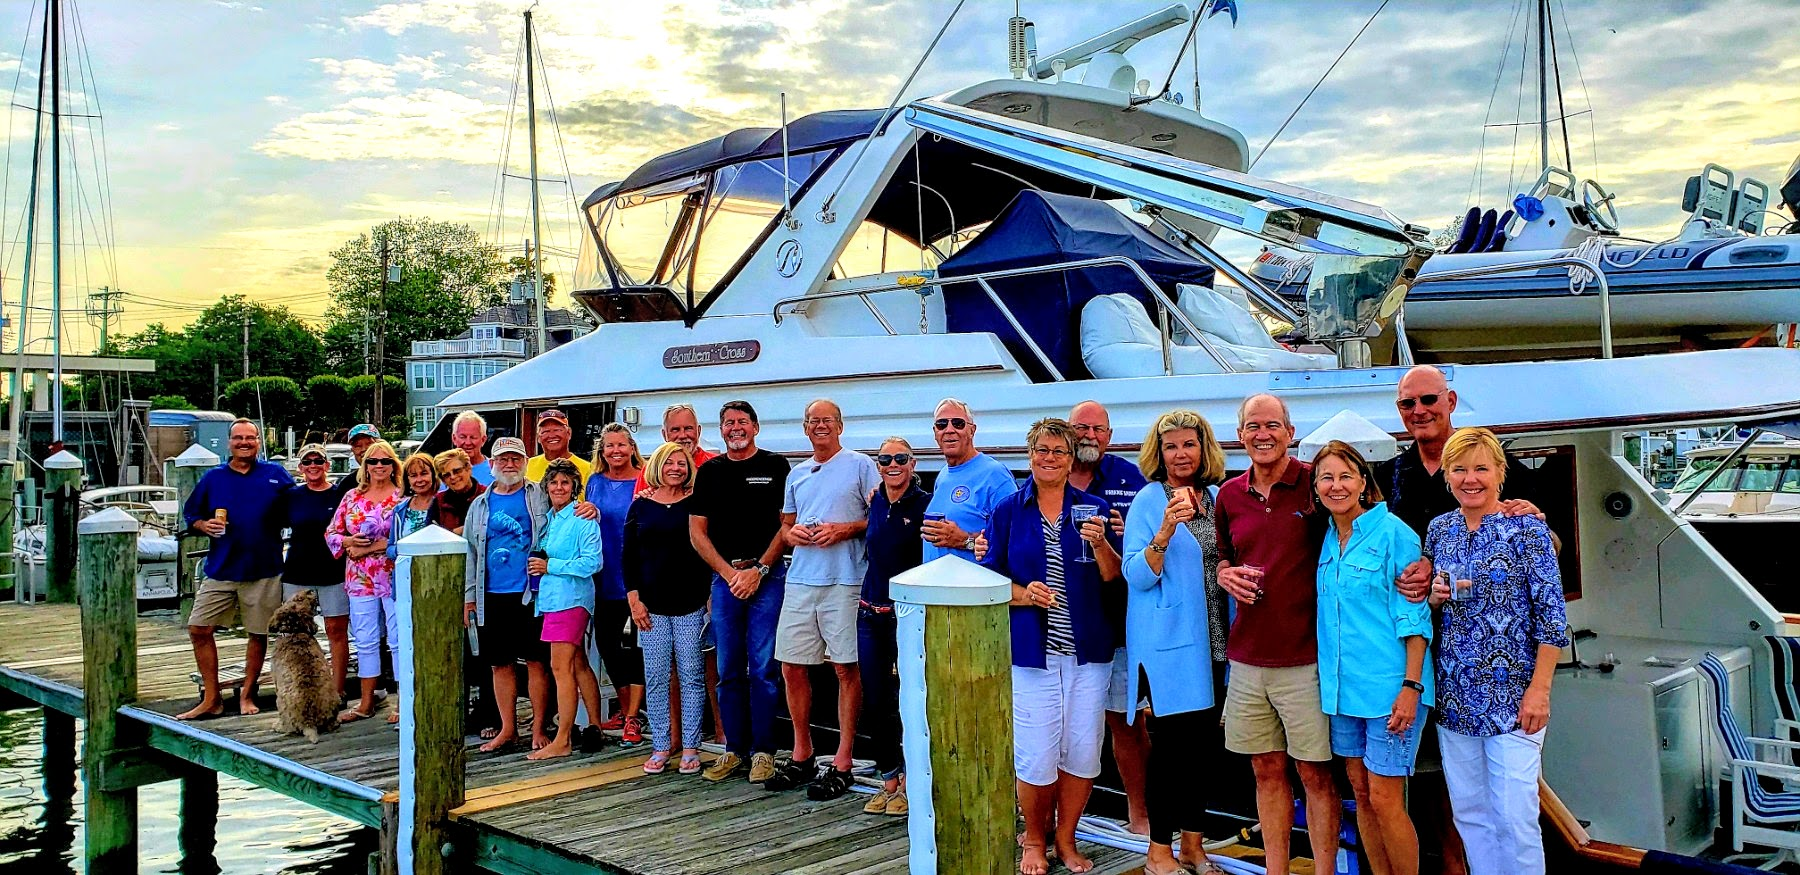 The Looper's Docktail Party hosted by Penny Battles and Dave Burnes on their boat Southern Cross